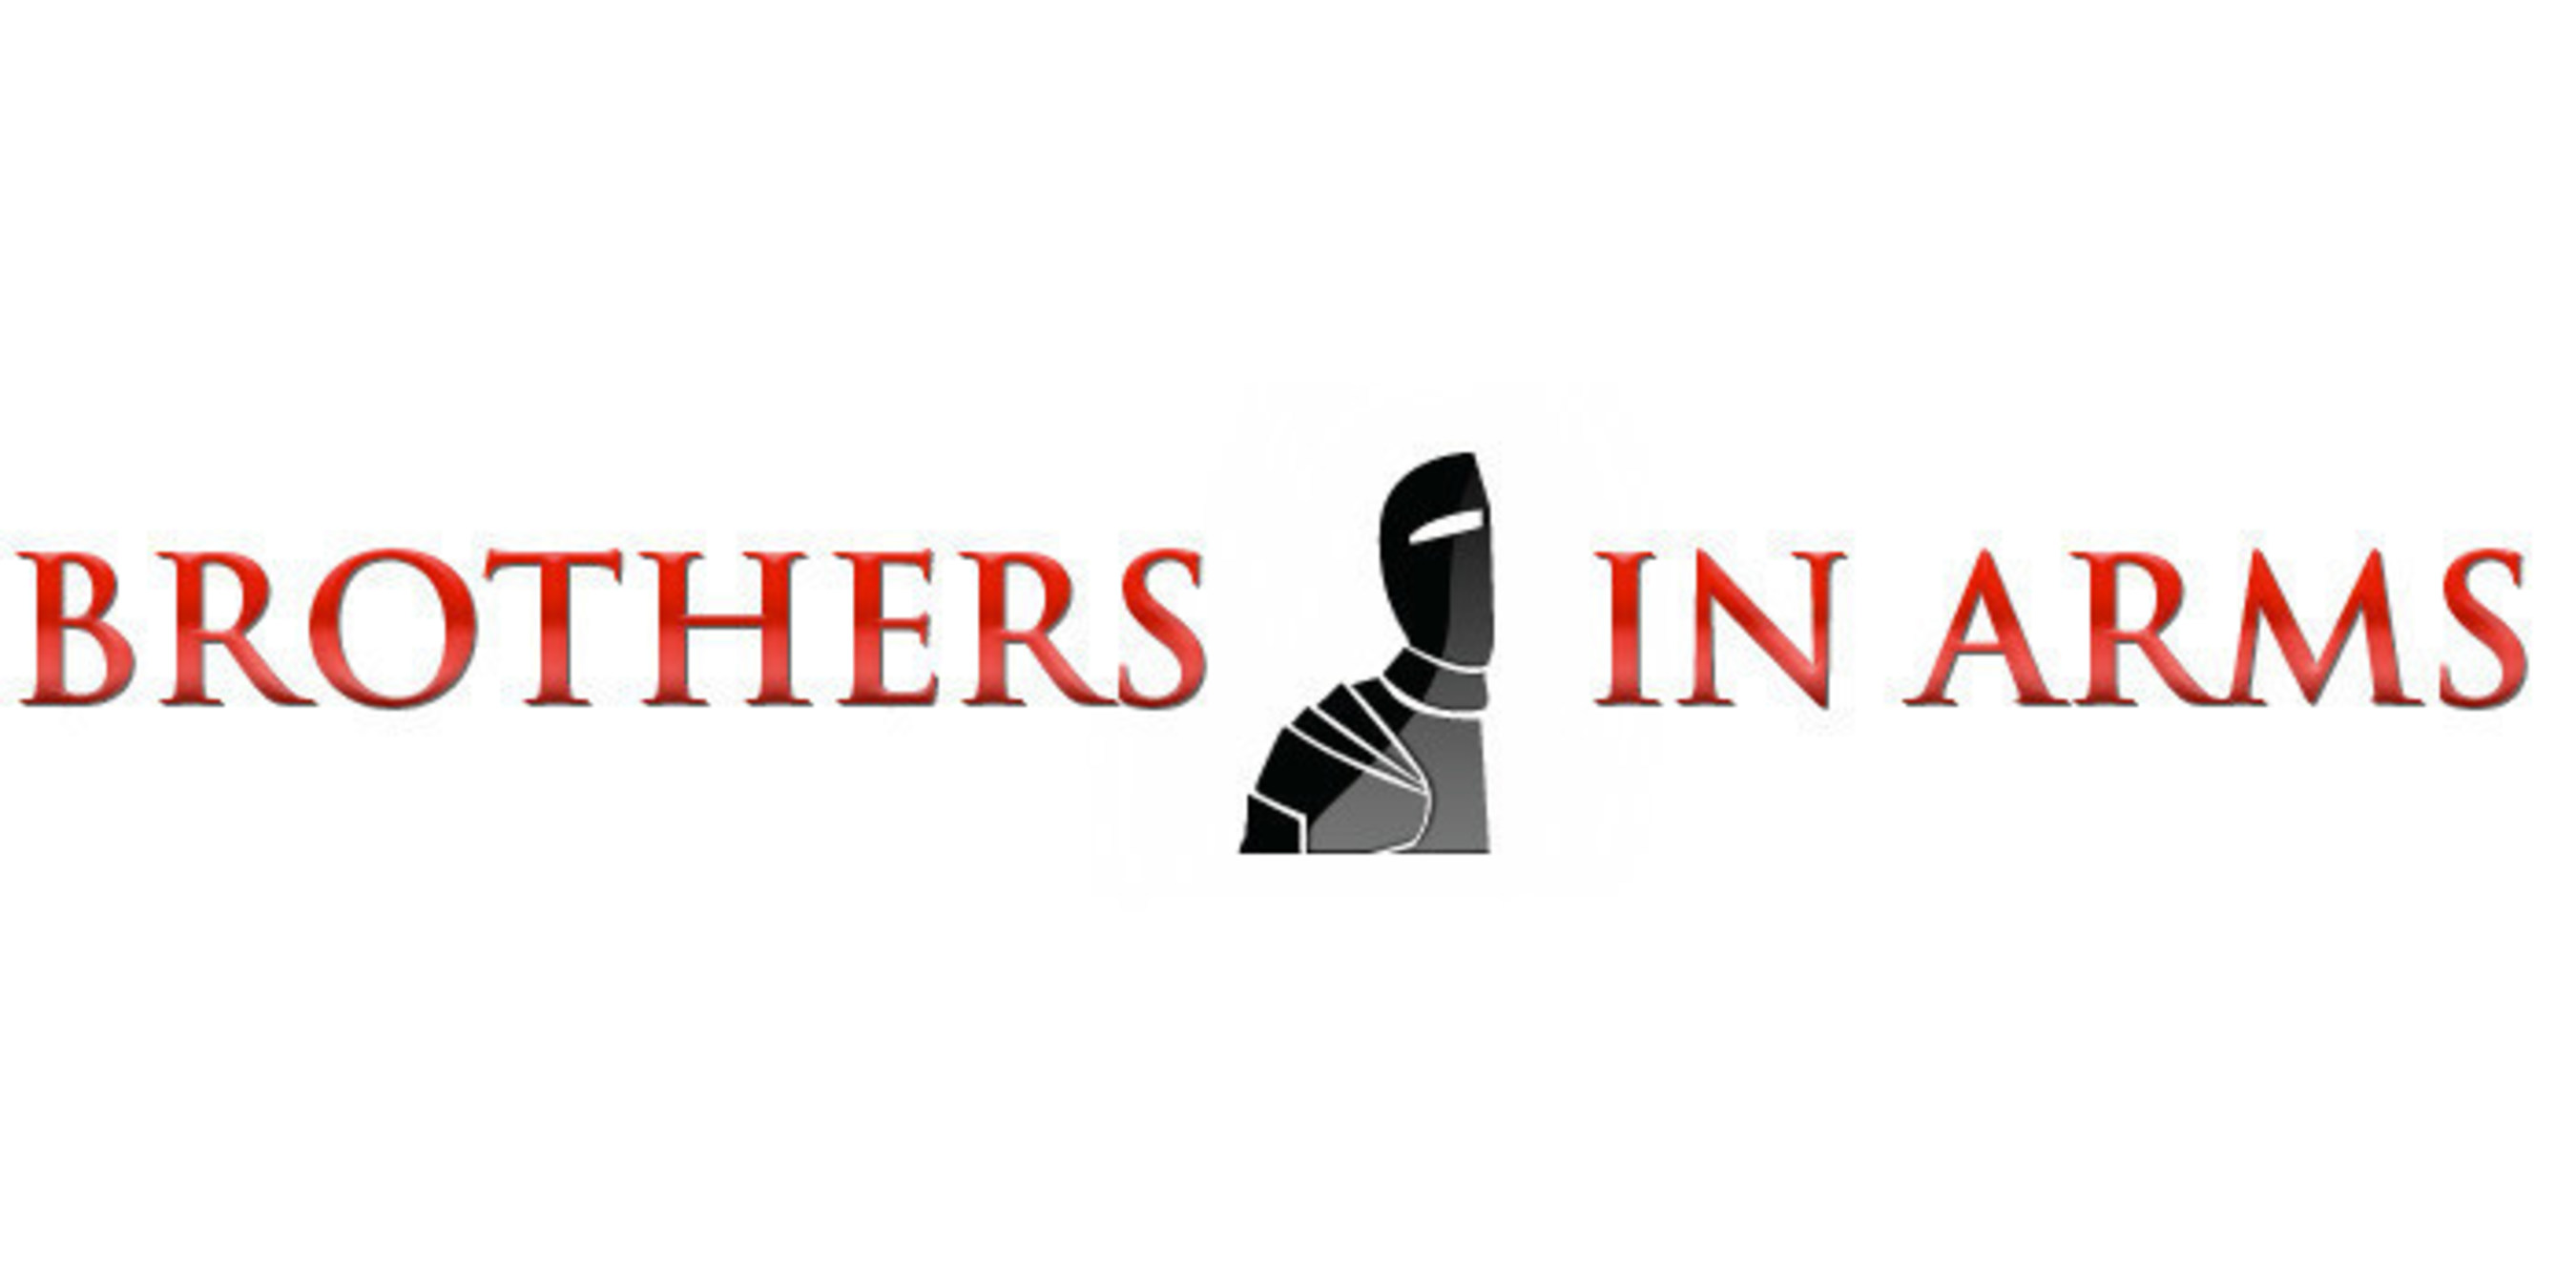 Brothers in Arms Foundation